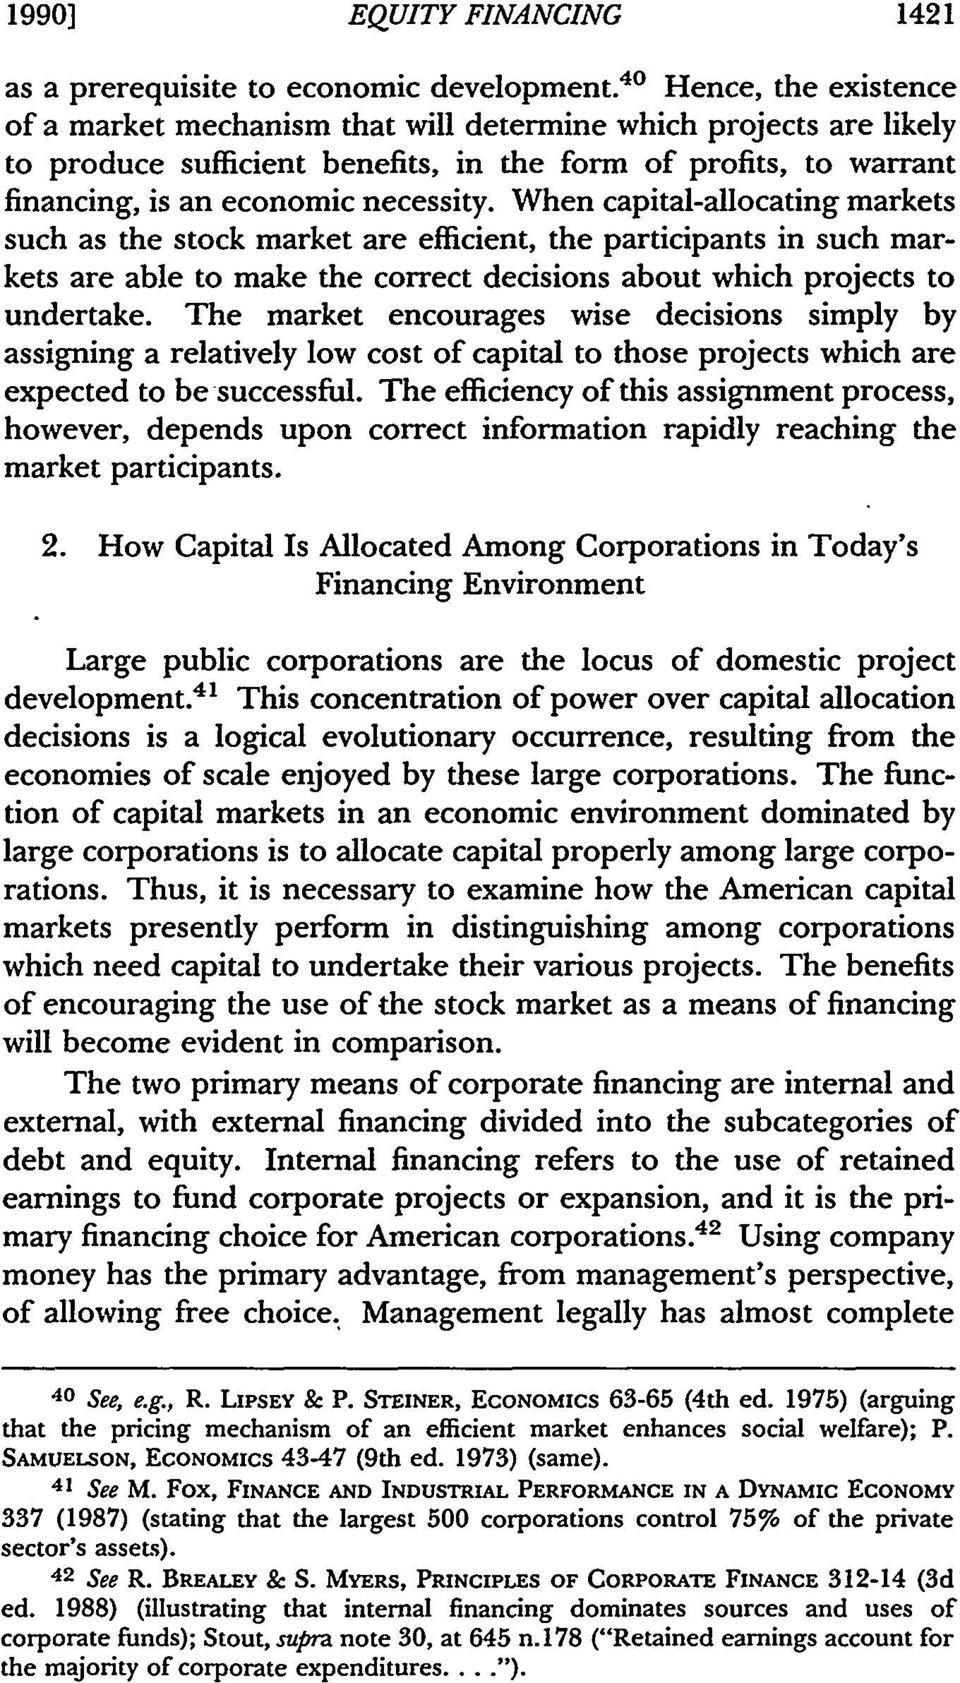 principles of corporate finance 7 Readings lecture notes recitations  principles of corporate finance 7th ed irwin/mcgraw hill.